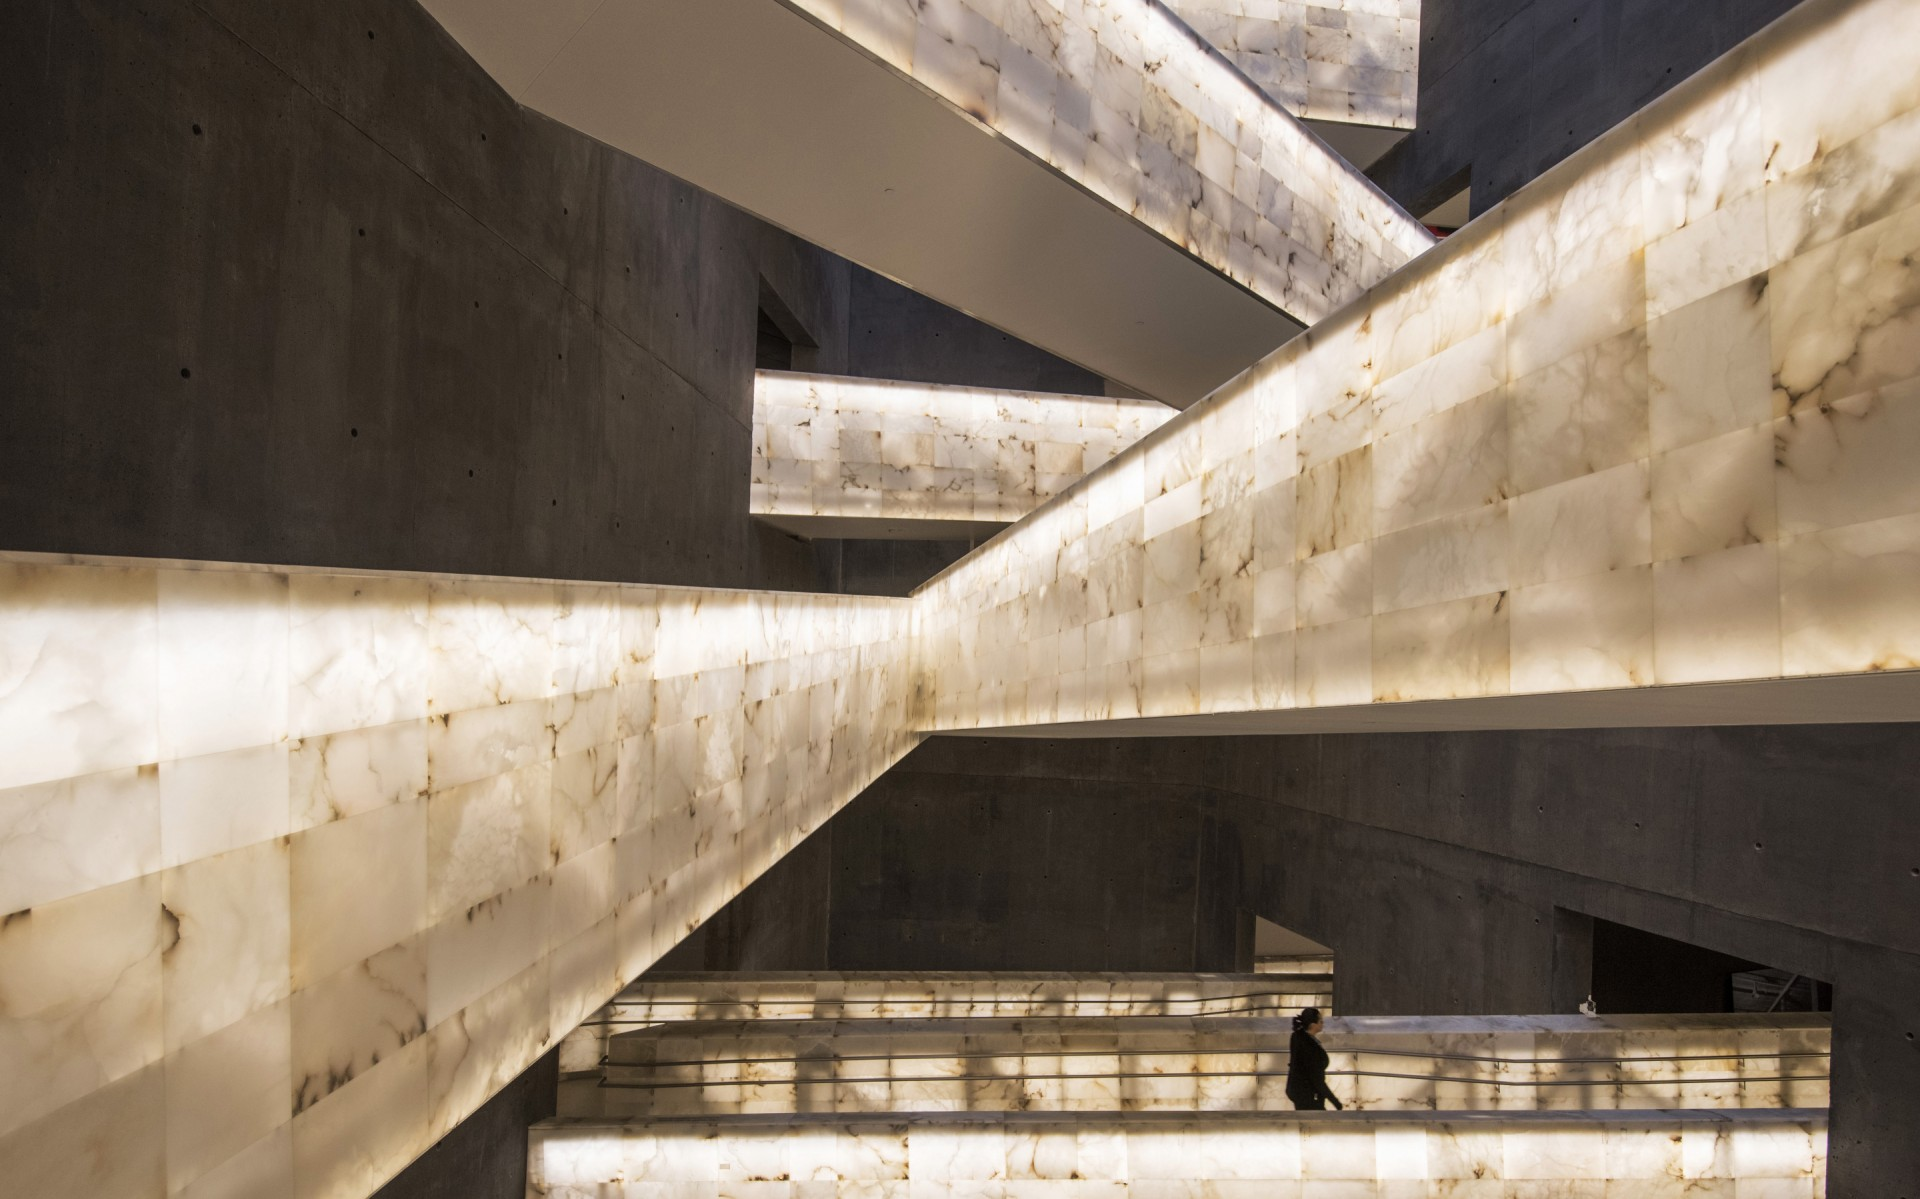 Architect Antoine Predock developed a concept of illuminated alabaster ramps to provide a space for visitors to clear their minds between galleries.